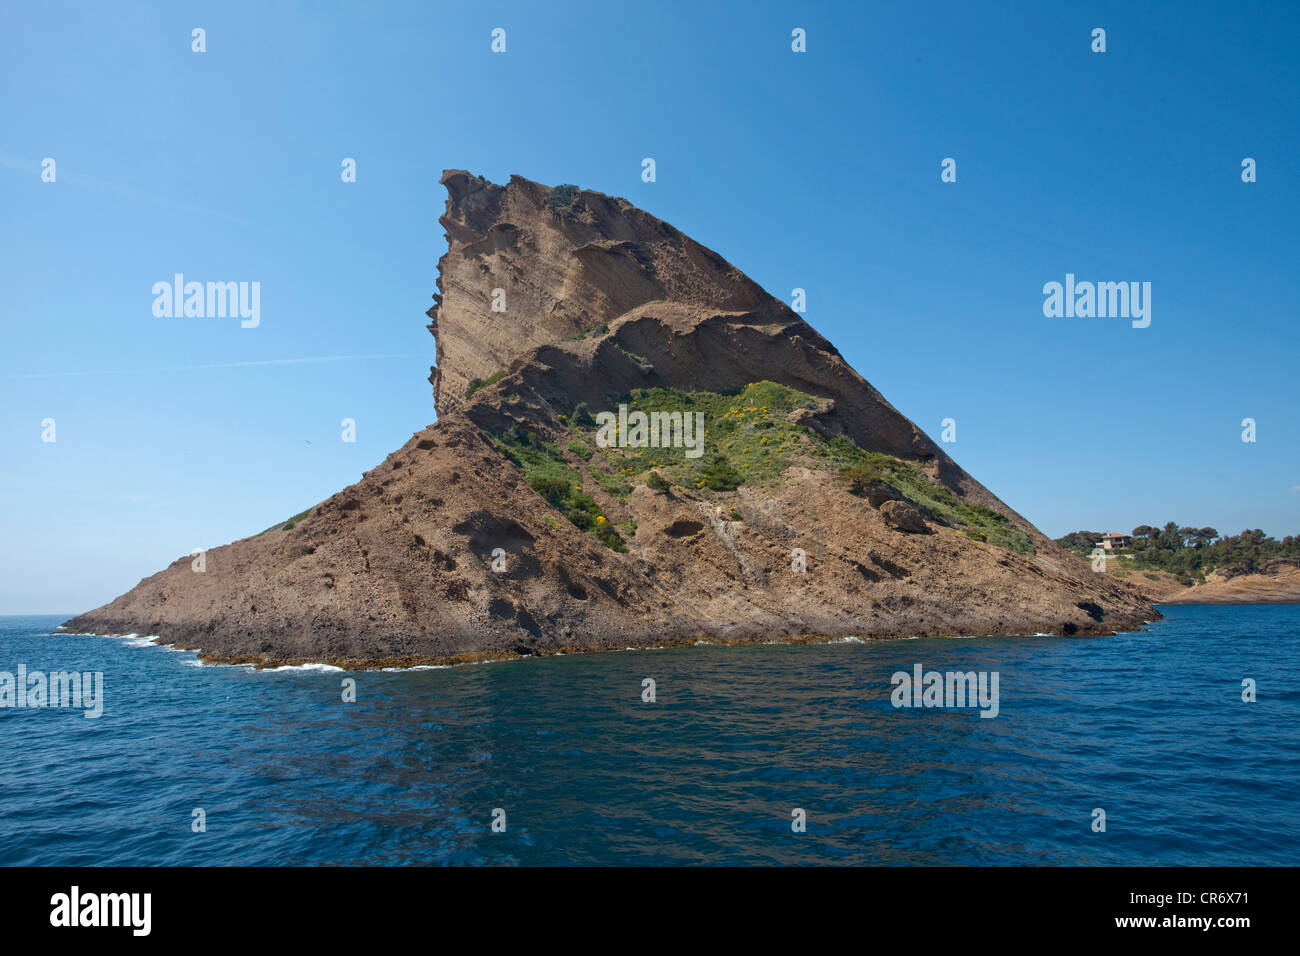 Rock, Le Bec d'Aigle, Eagle's Beak, rock behind the dockyard of , Bouches-du-Rhone department, French Riviera, - Stock Image